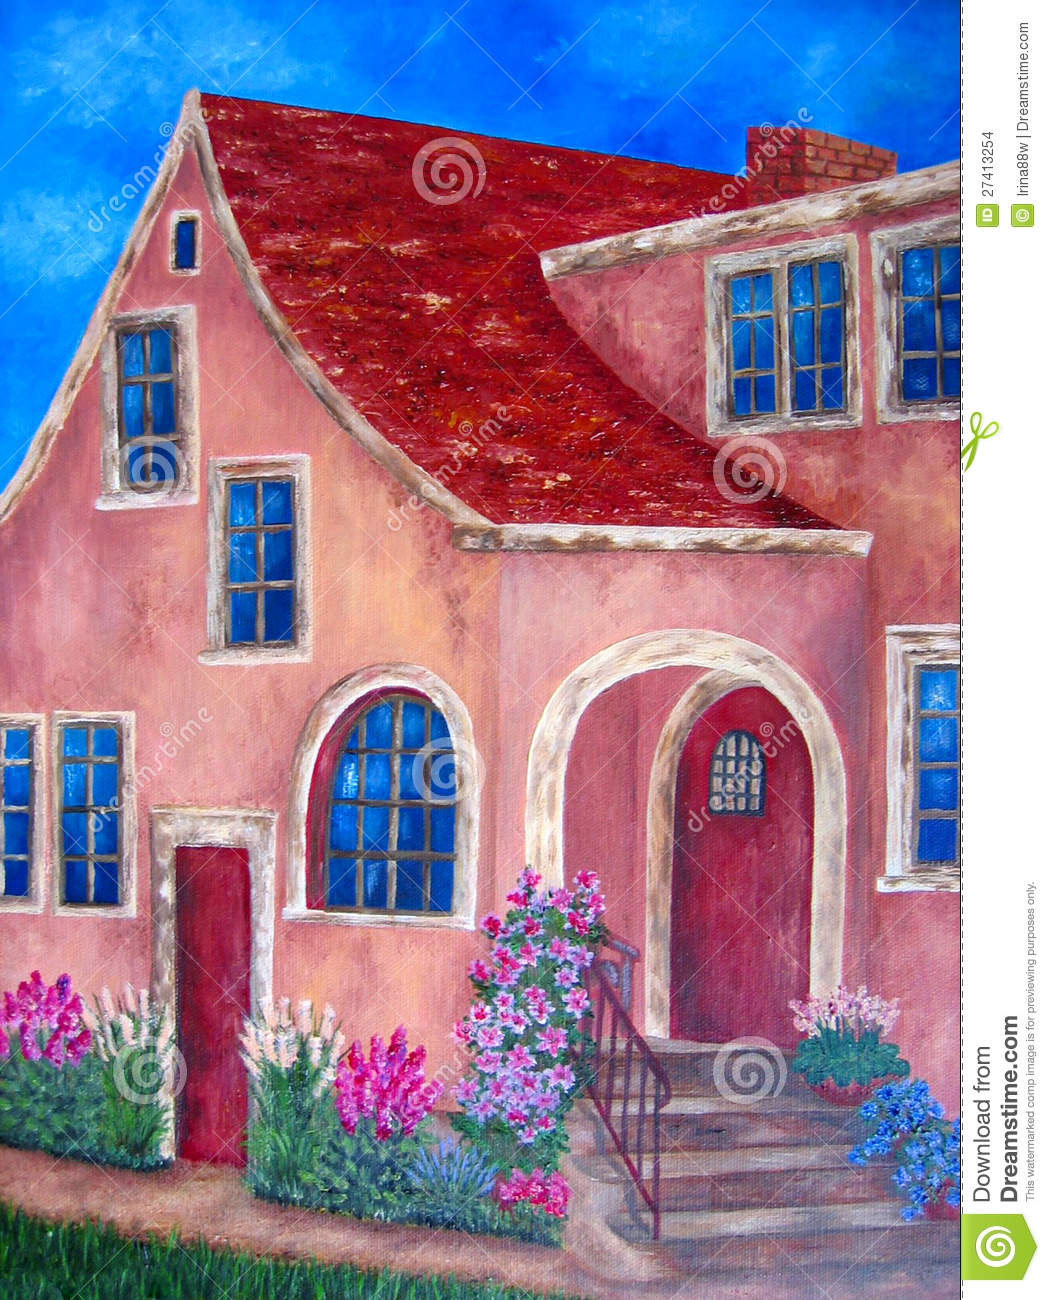 painting of house with blue windows and flowers stock images